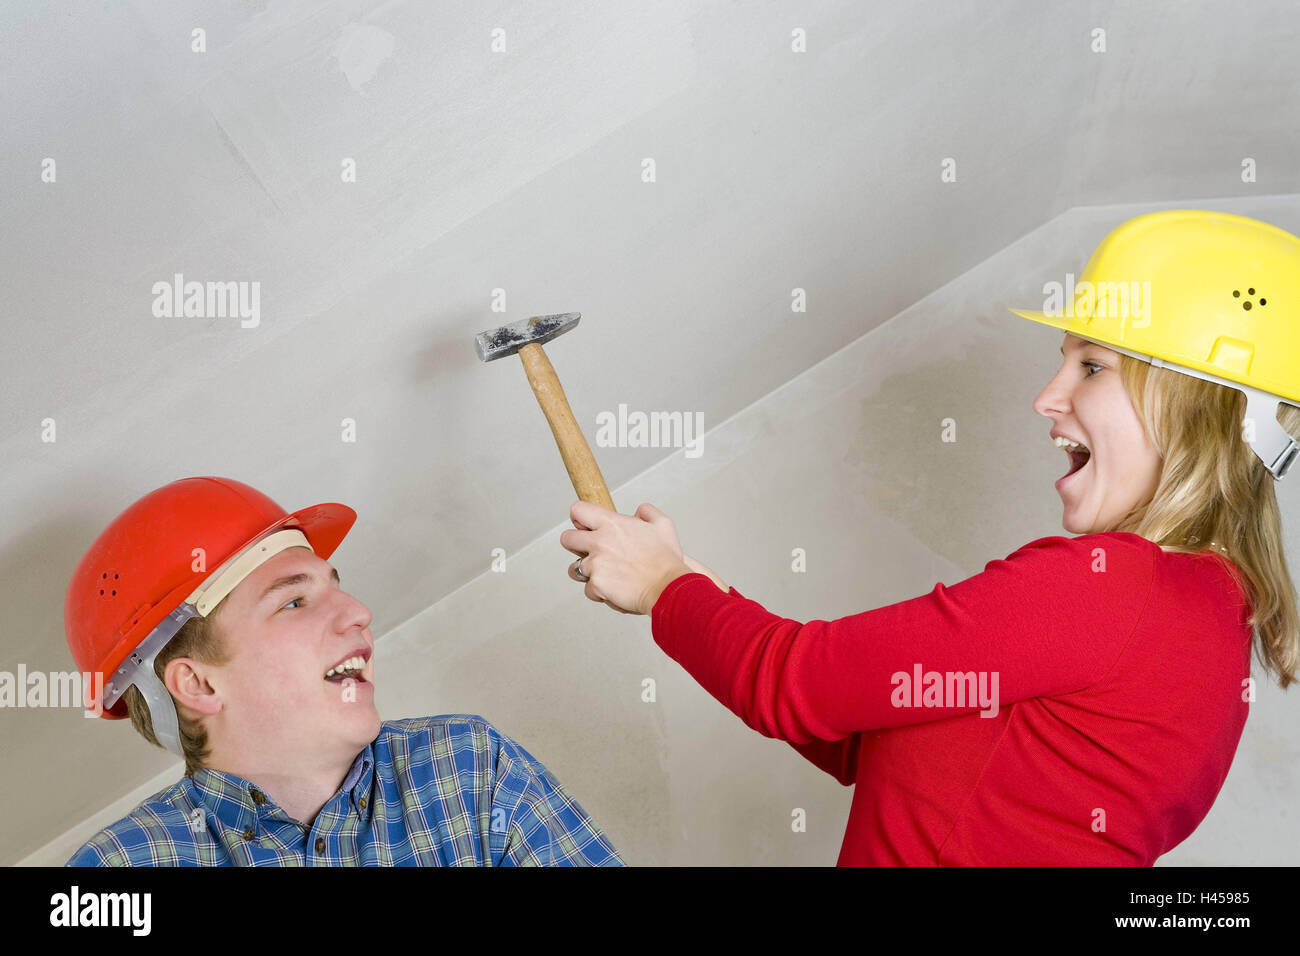 Th It Yourself Stock Photos Images Alamy Pics Do Electrician Couple Young Construction Helmets Fun Gesture Howler Icon